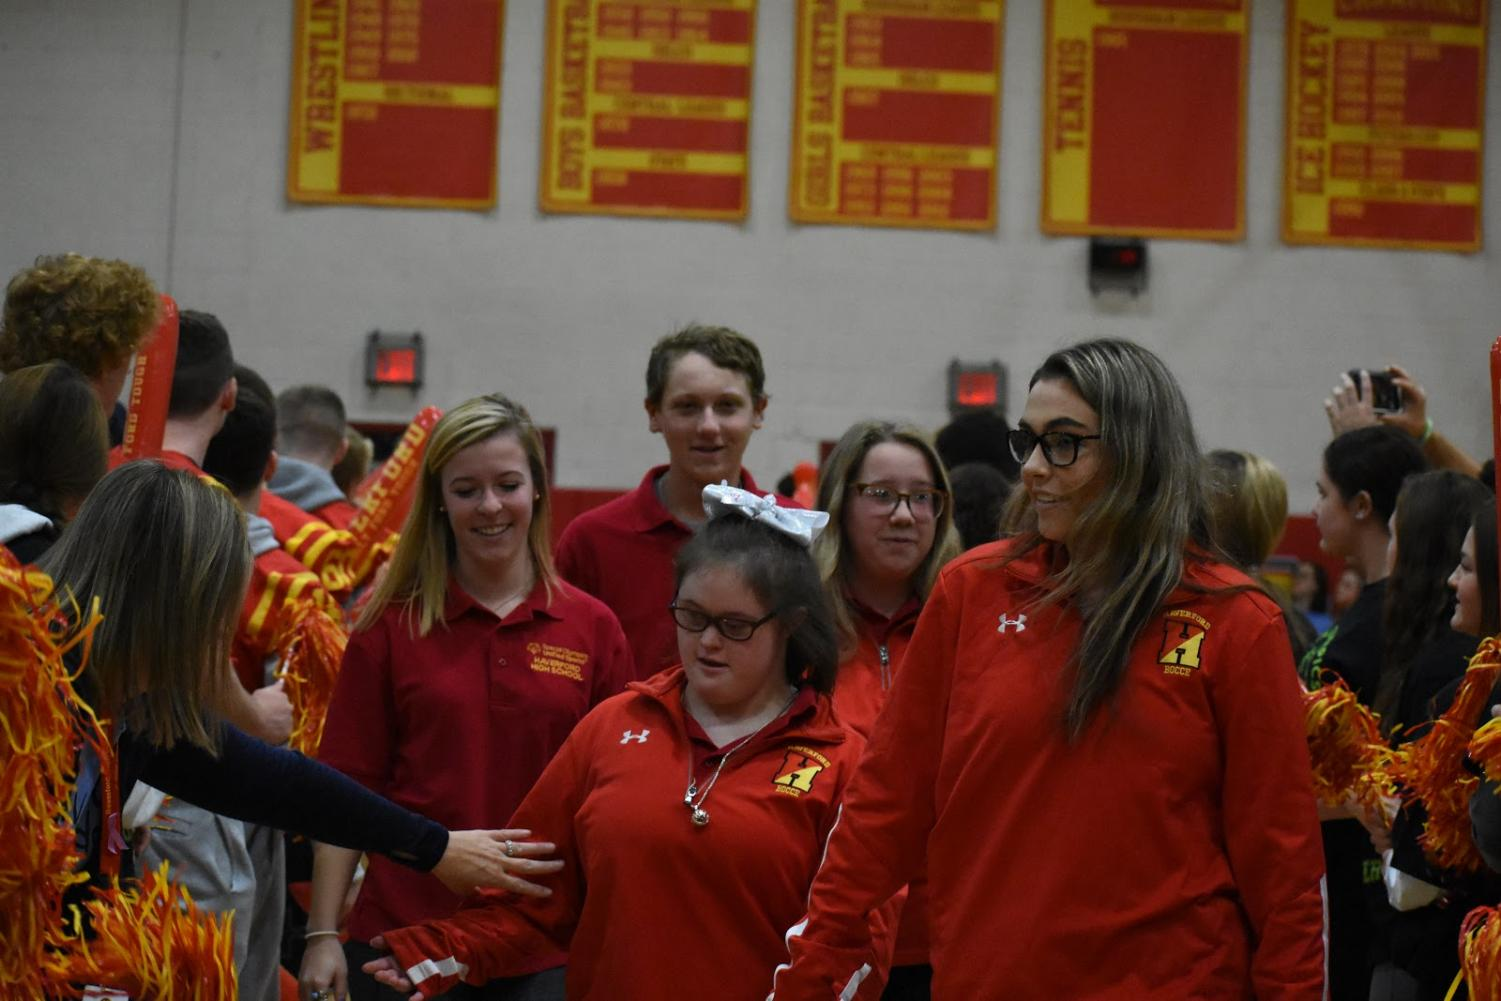 Pictured from left to right are Sarah Goeckel, David Gibson, Molly Warren, Annie Gable, and Meaghan Hennessy entering the Juenger Gymnasium while being cheered on by football players and cheerleaders.